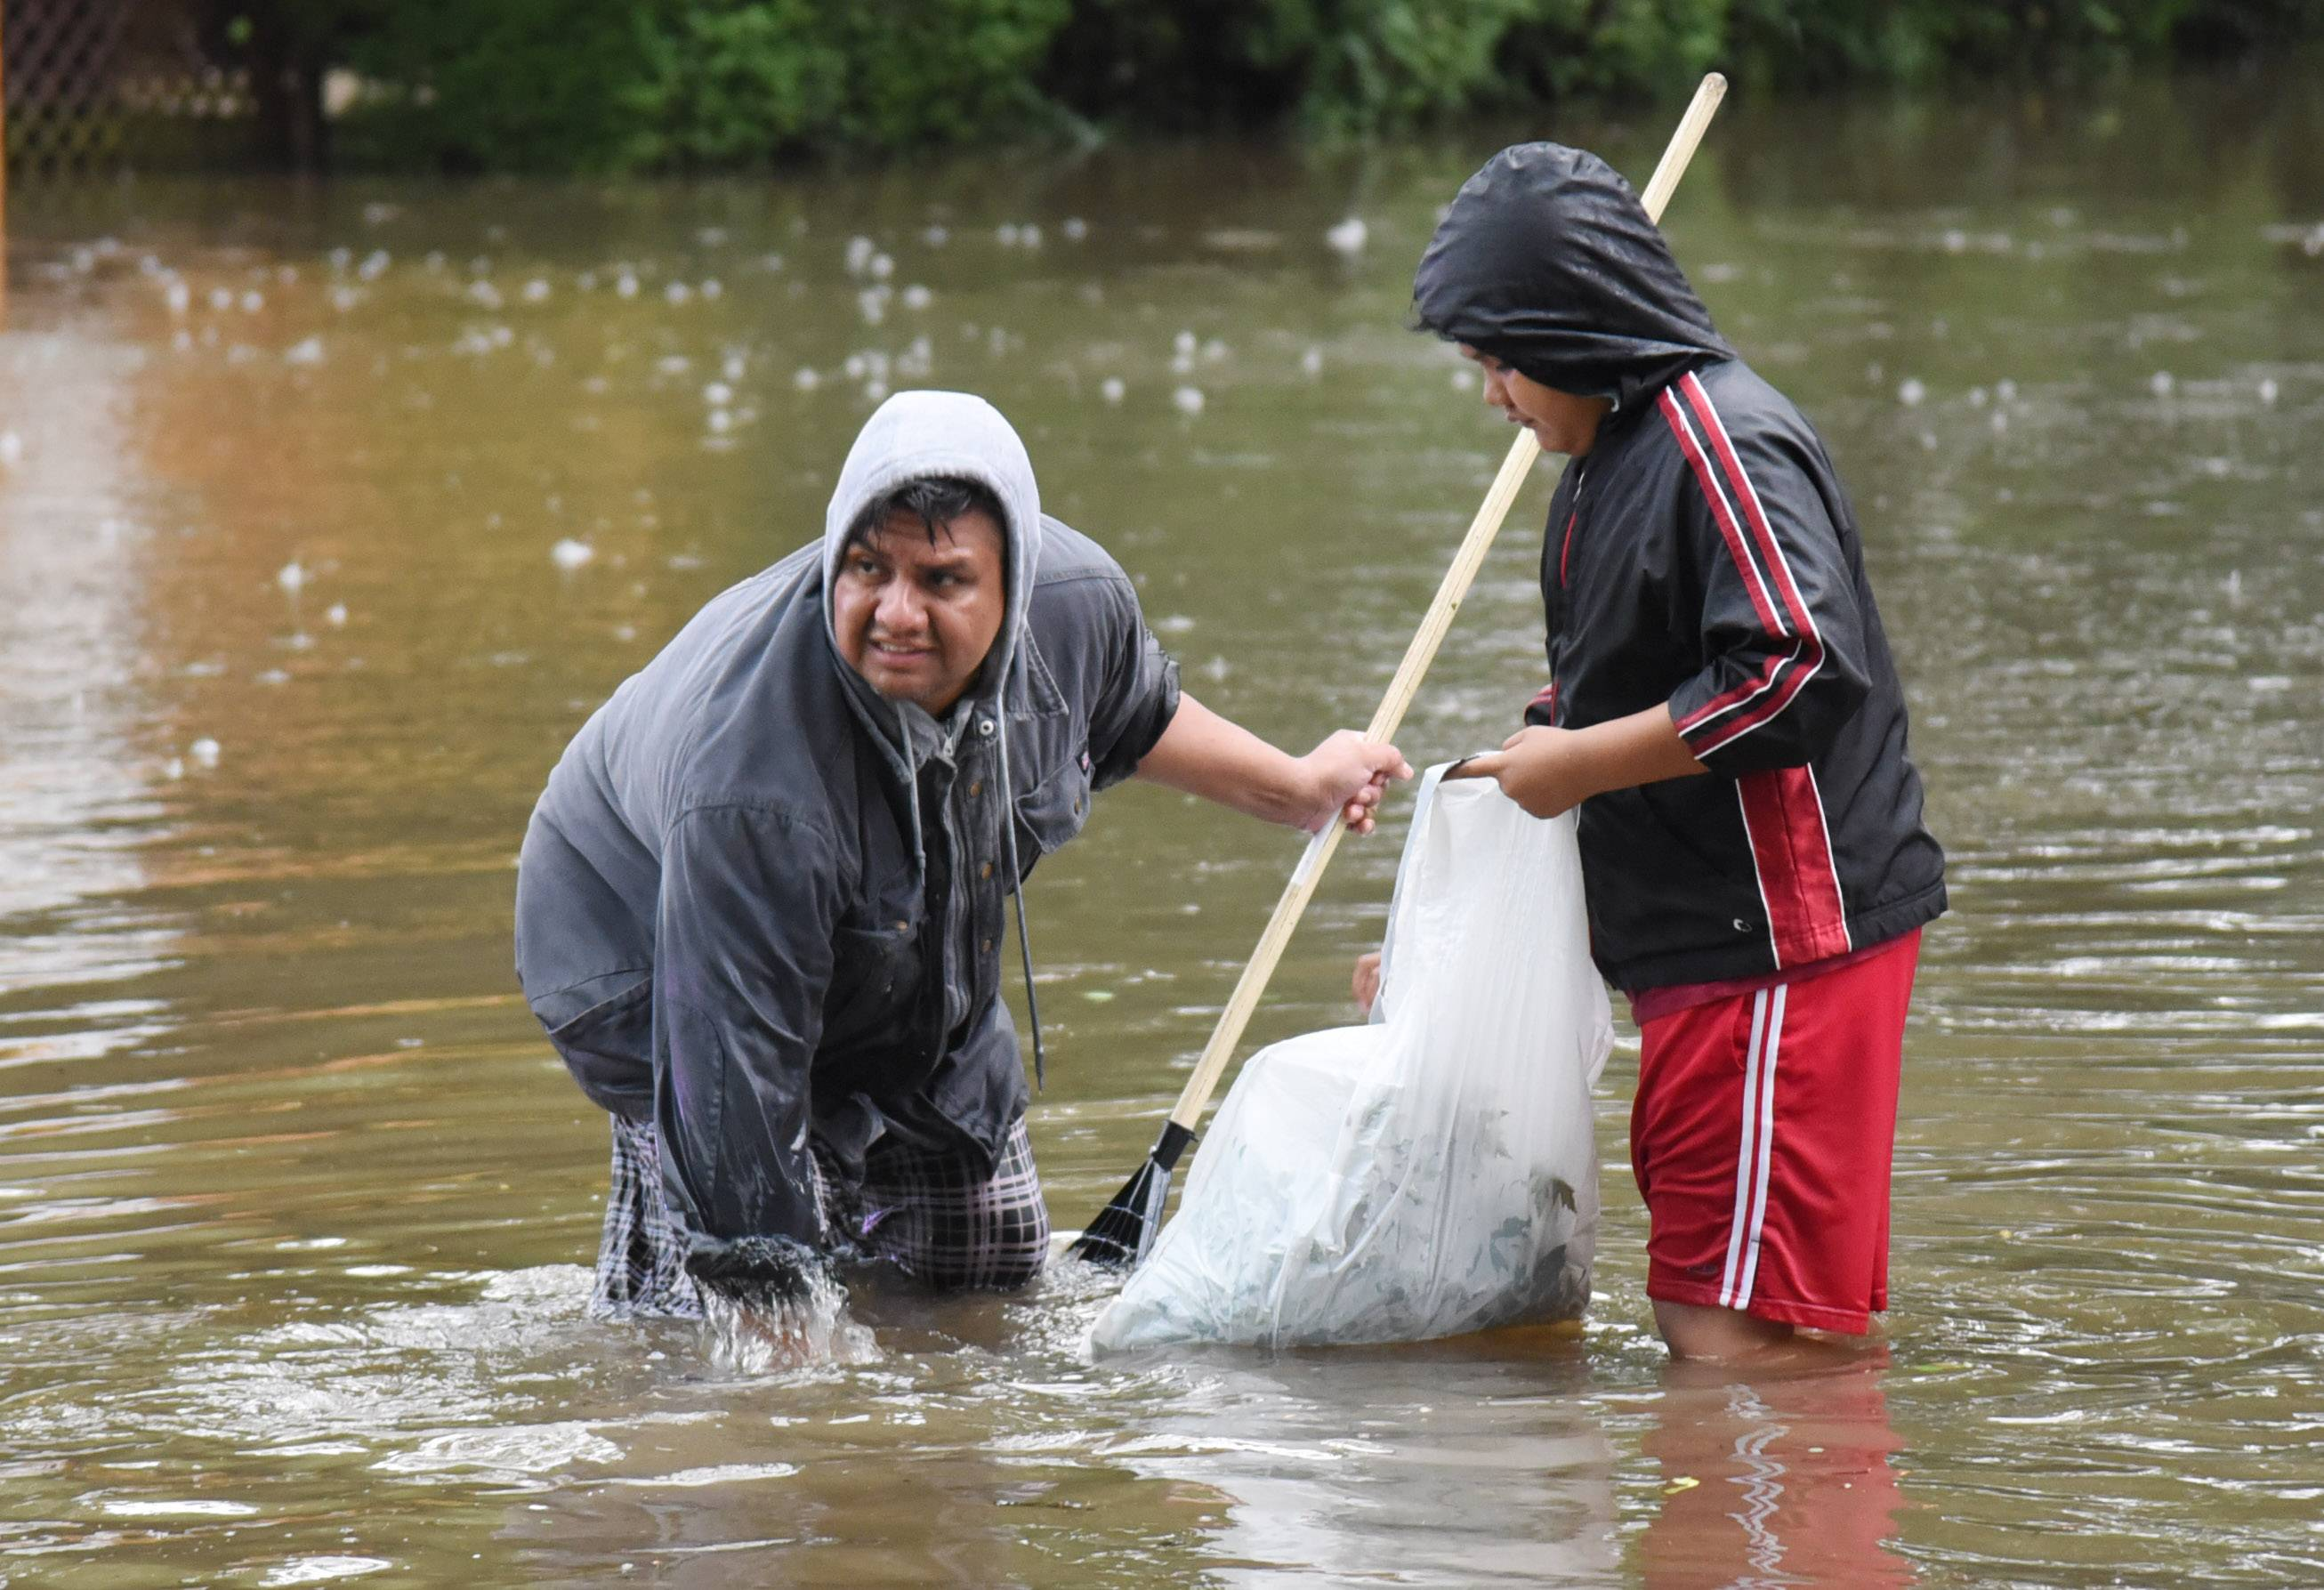 Jorge Morales and his 10-year-old son, Ariel, try to clear drains in front of his home on Lincoln Avenue at West Division Street in Mundelein following July's flood.